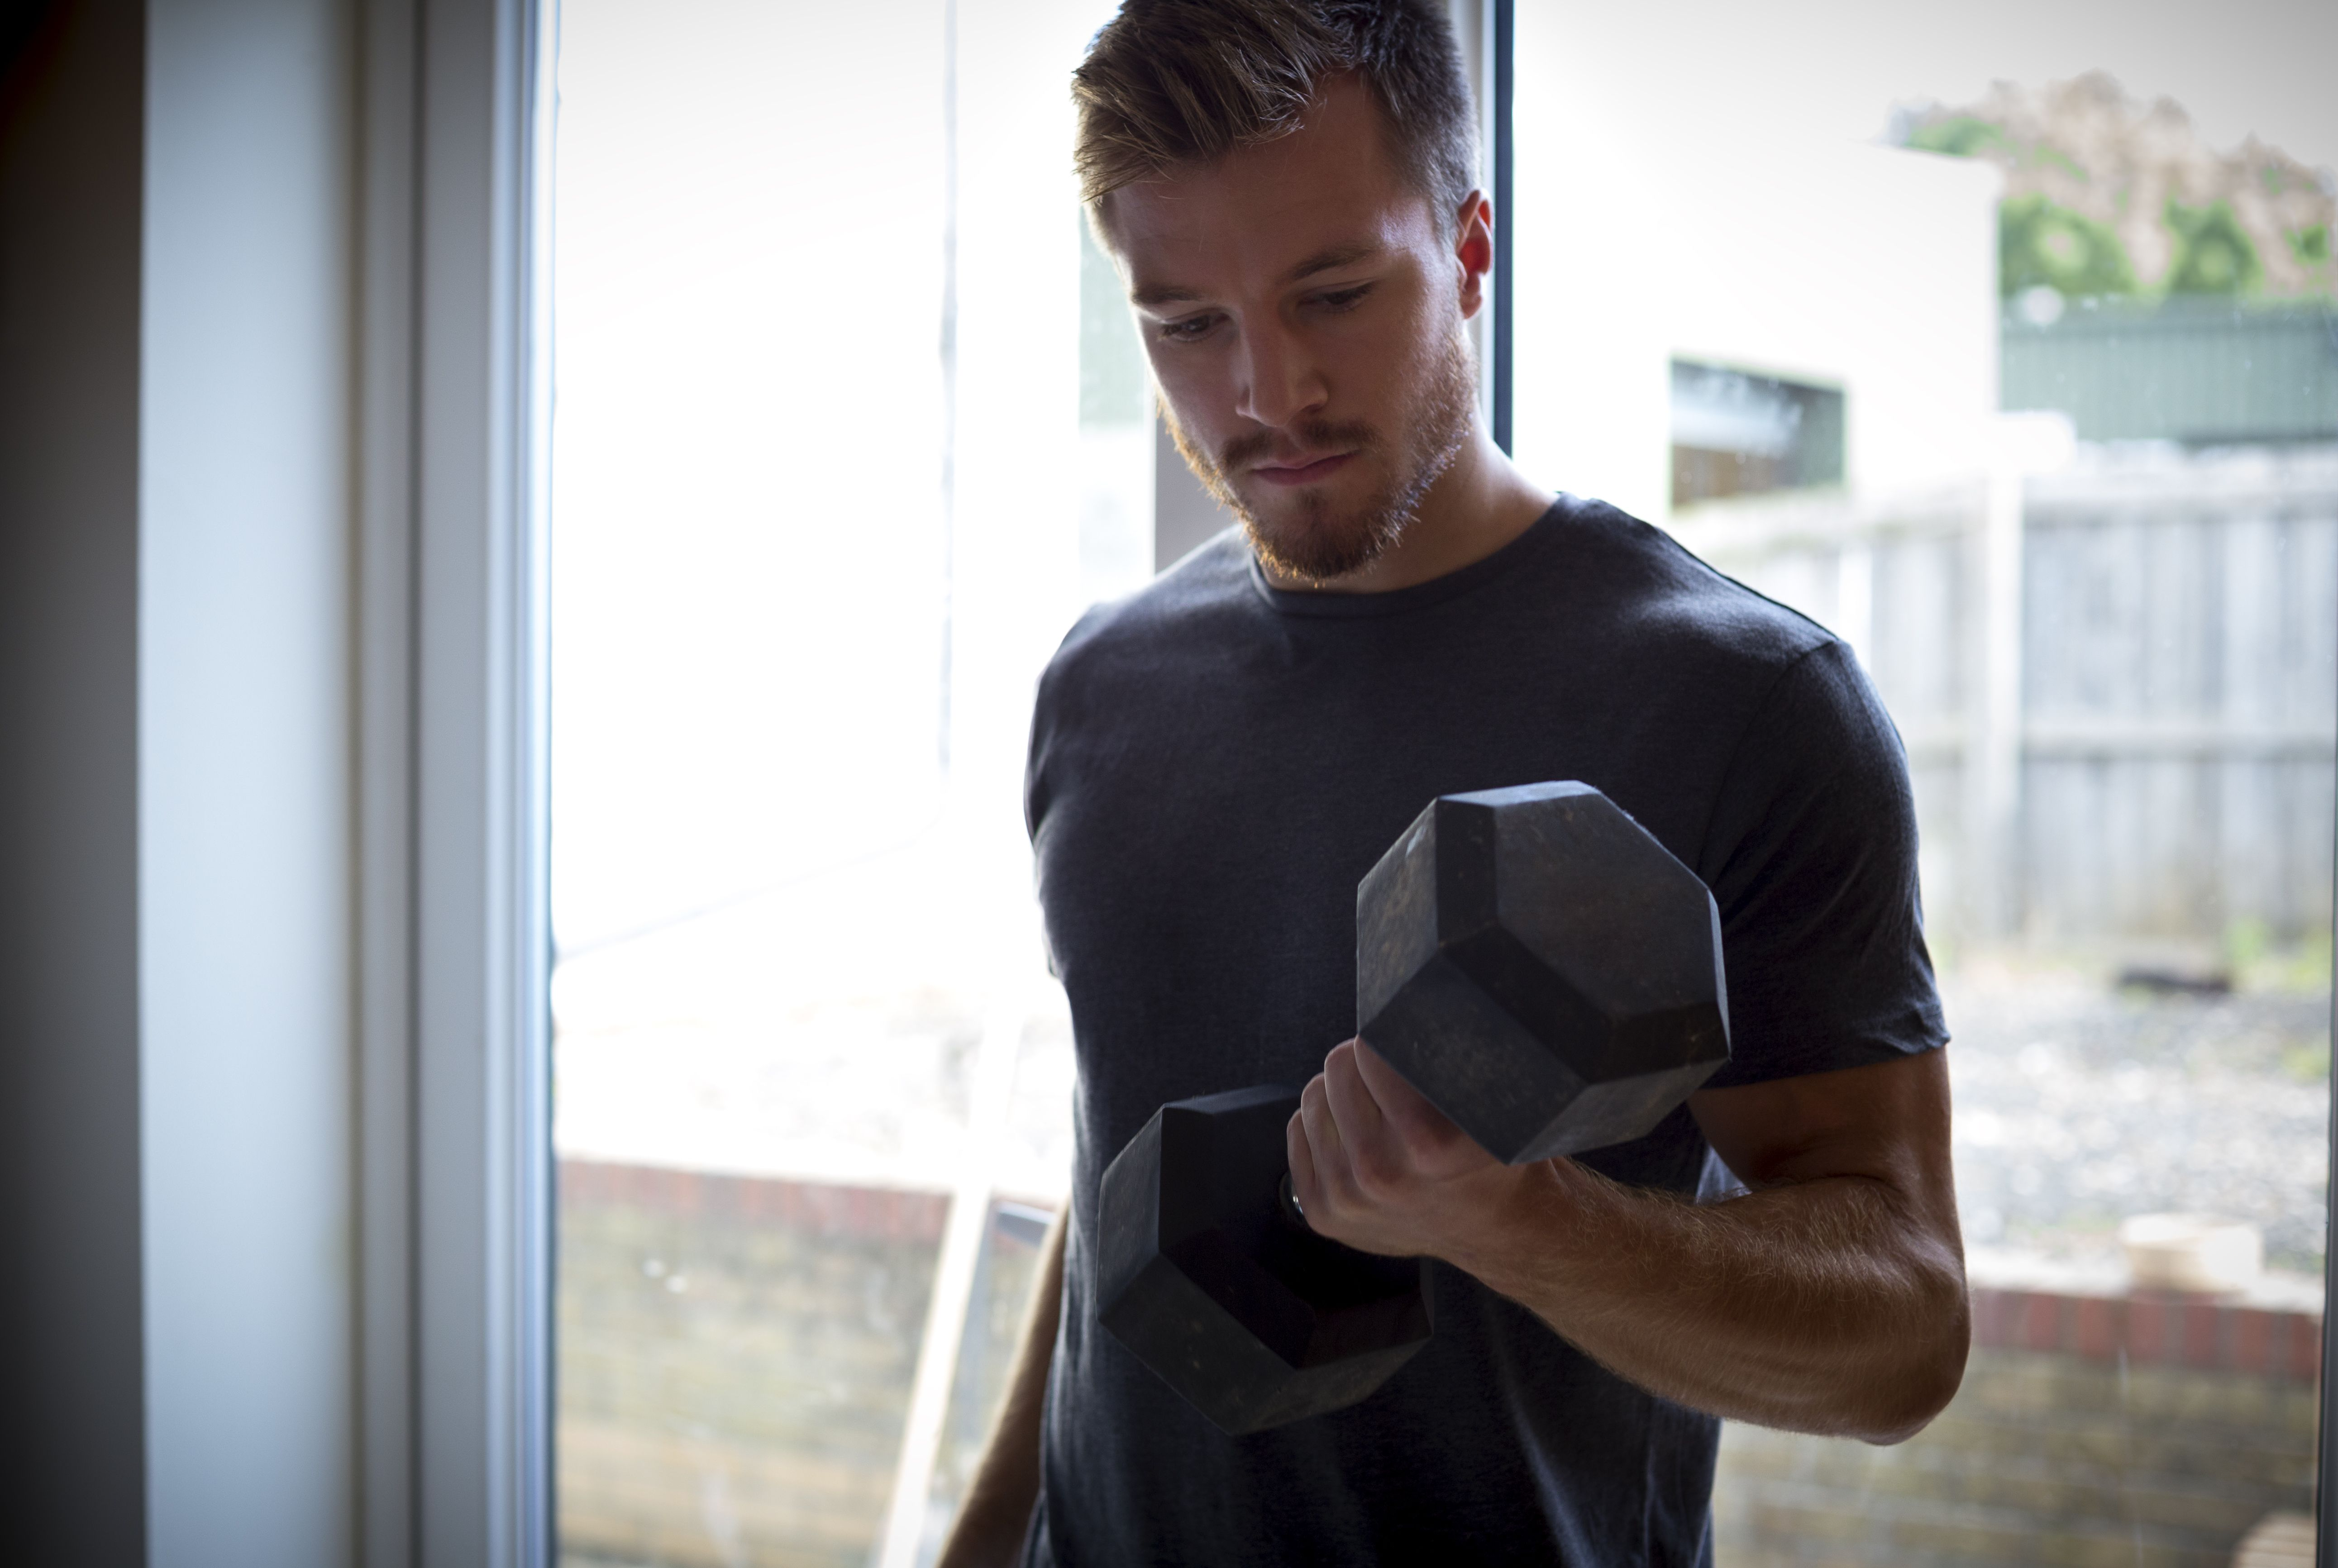 Get Ripped at Home With This Simple Dumbbell Workout